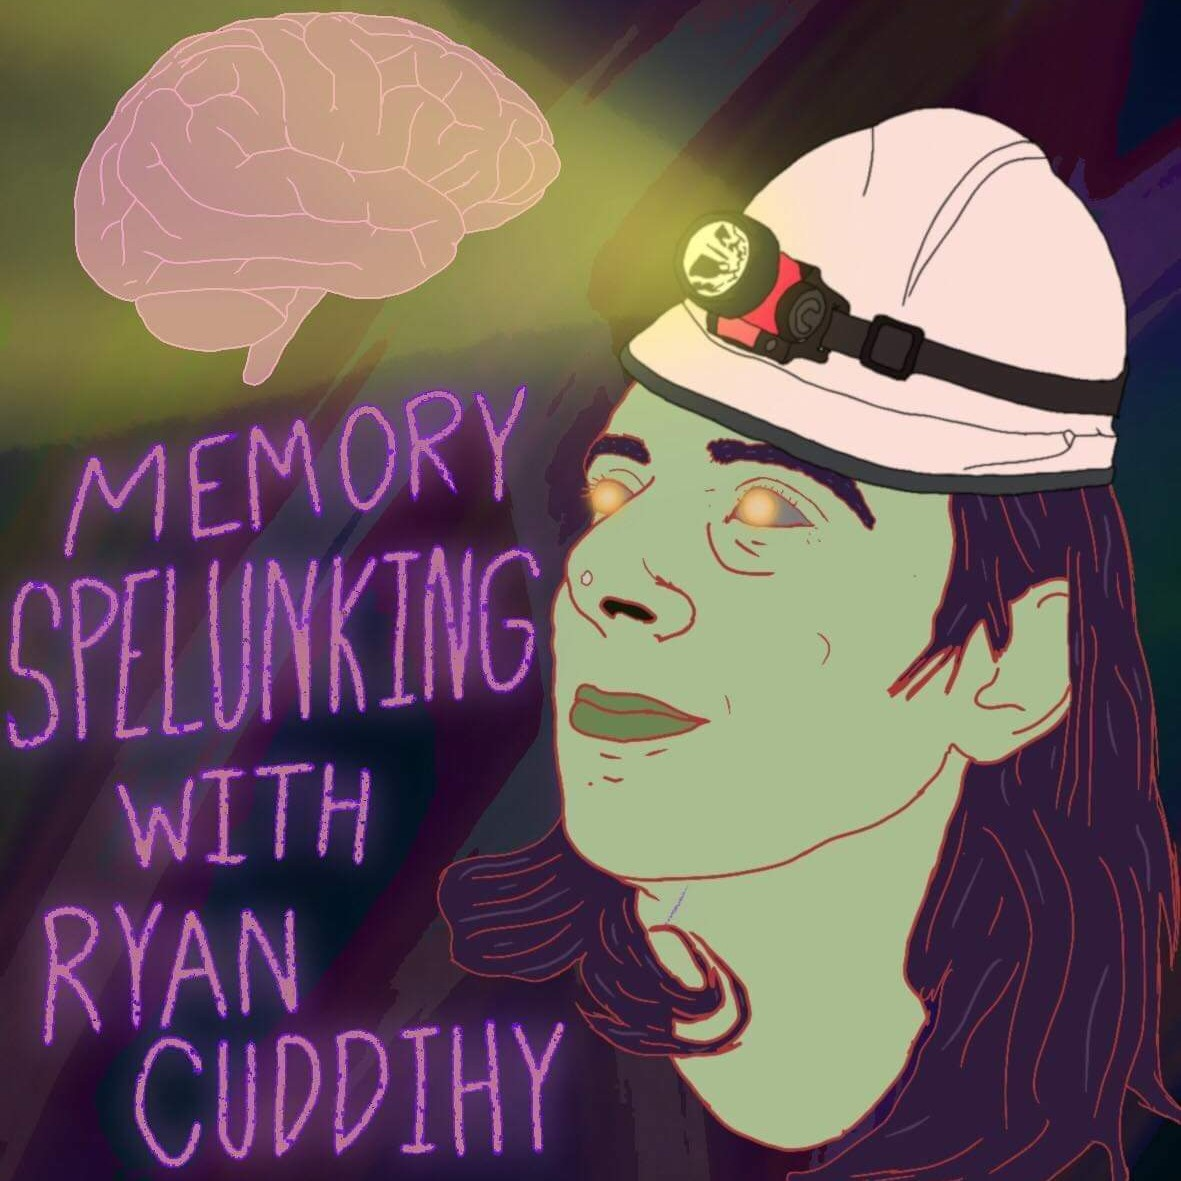 """""""Puppy Breath & Pocket Change"""" Memory Spelunking with Ryan Cuddihy"""